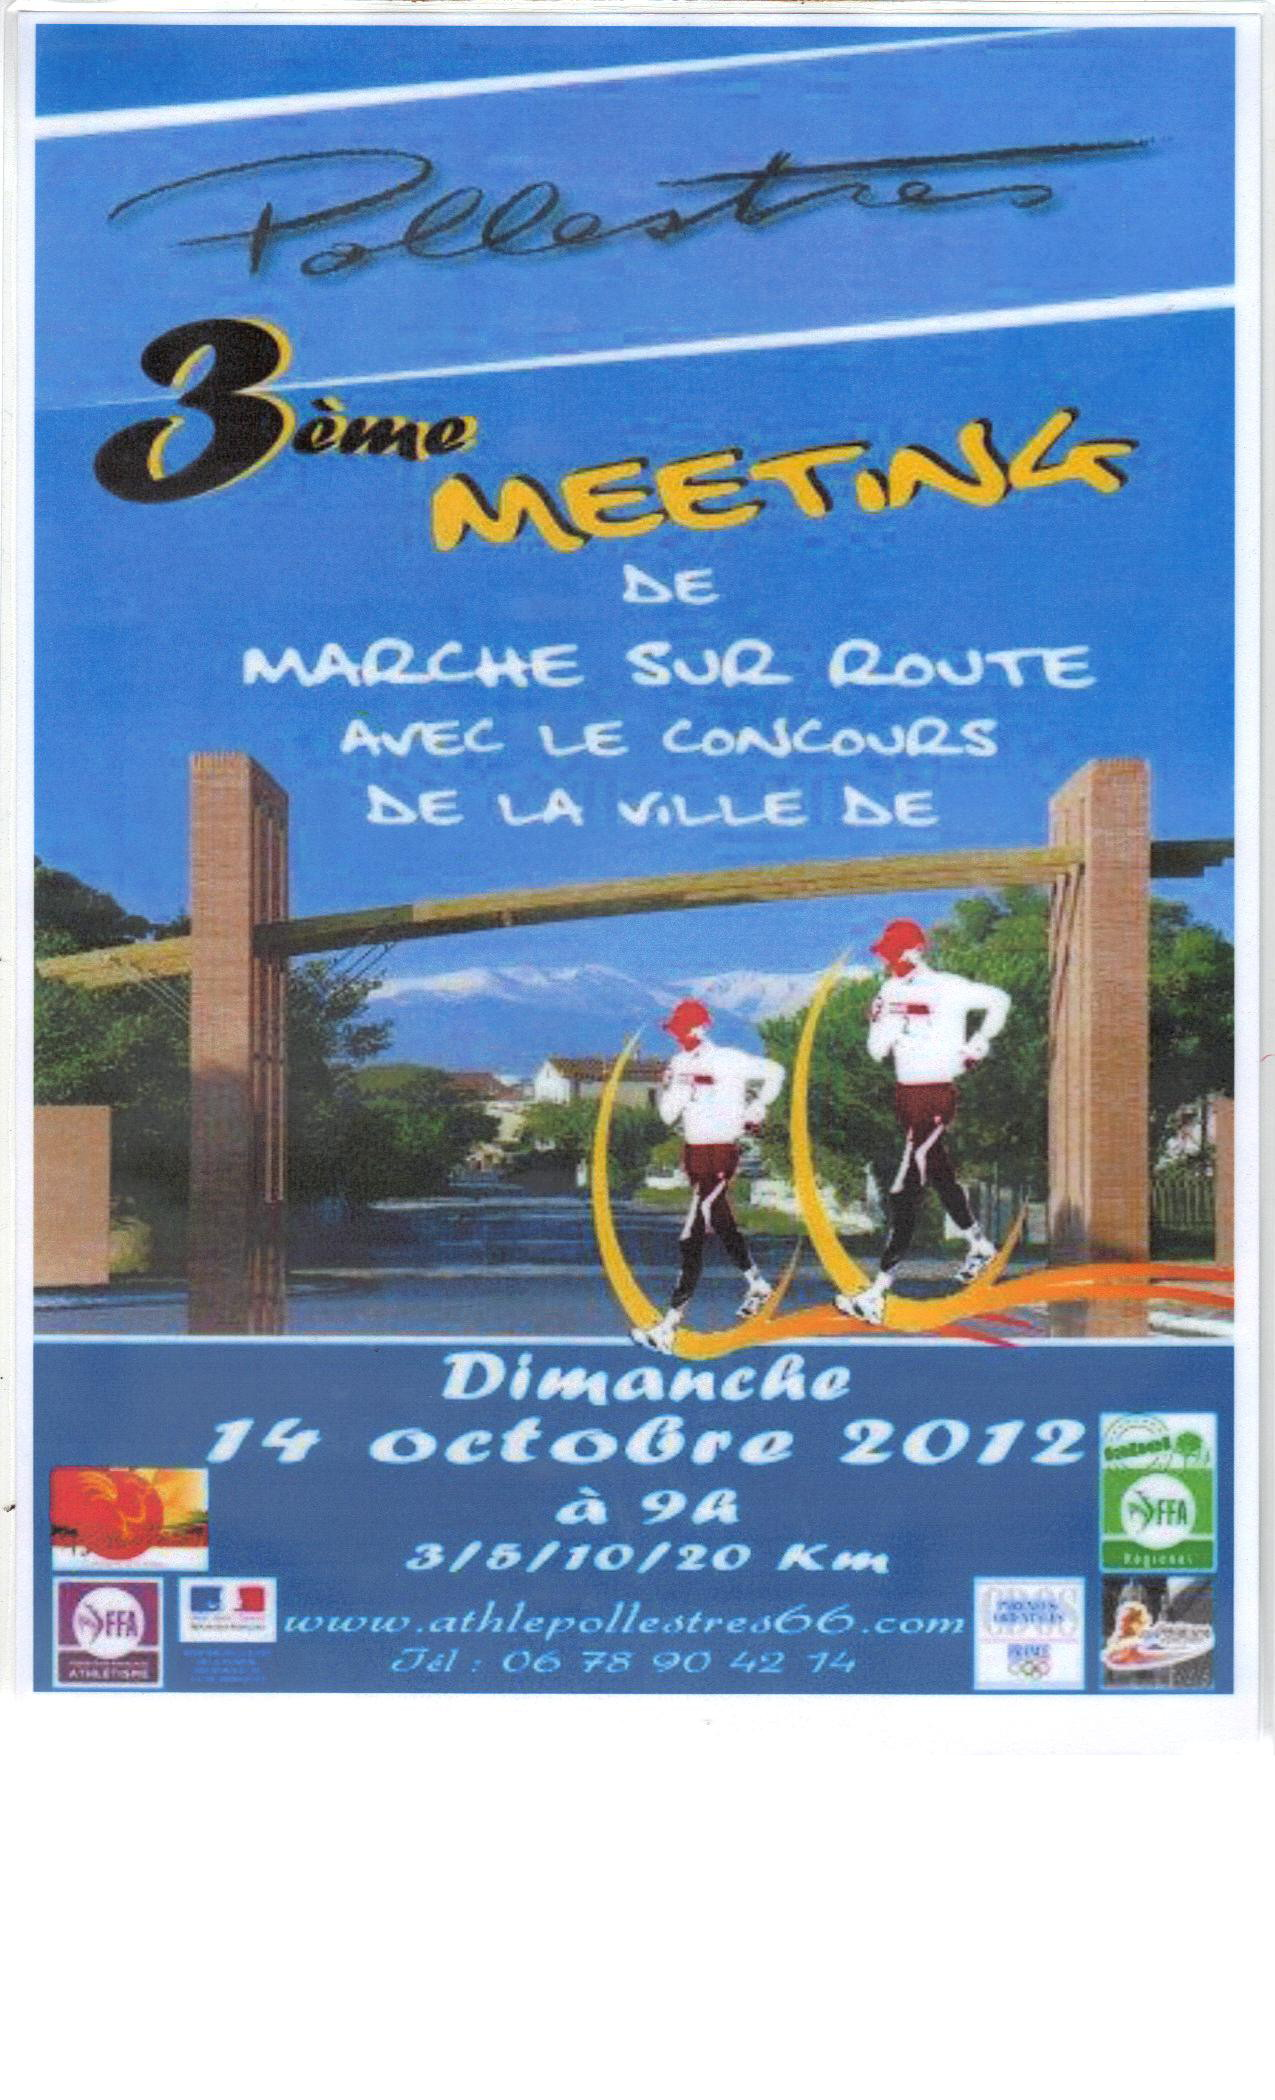 3er. MEETING DE POLLESTRES